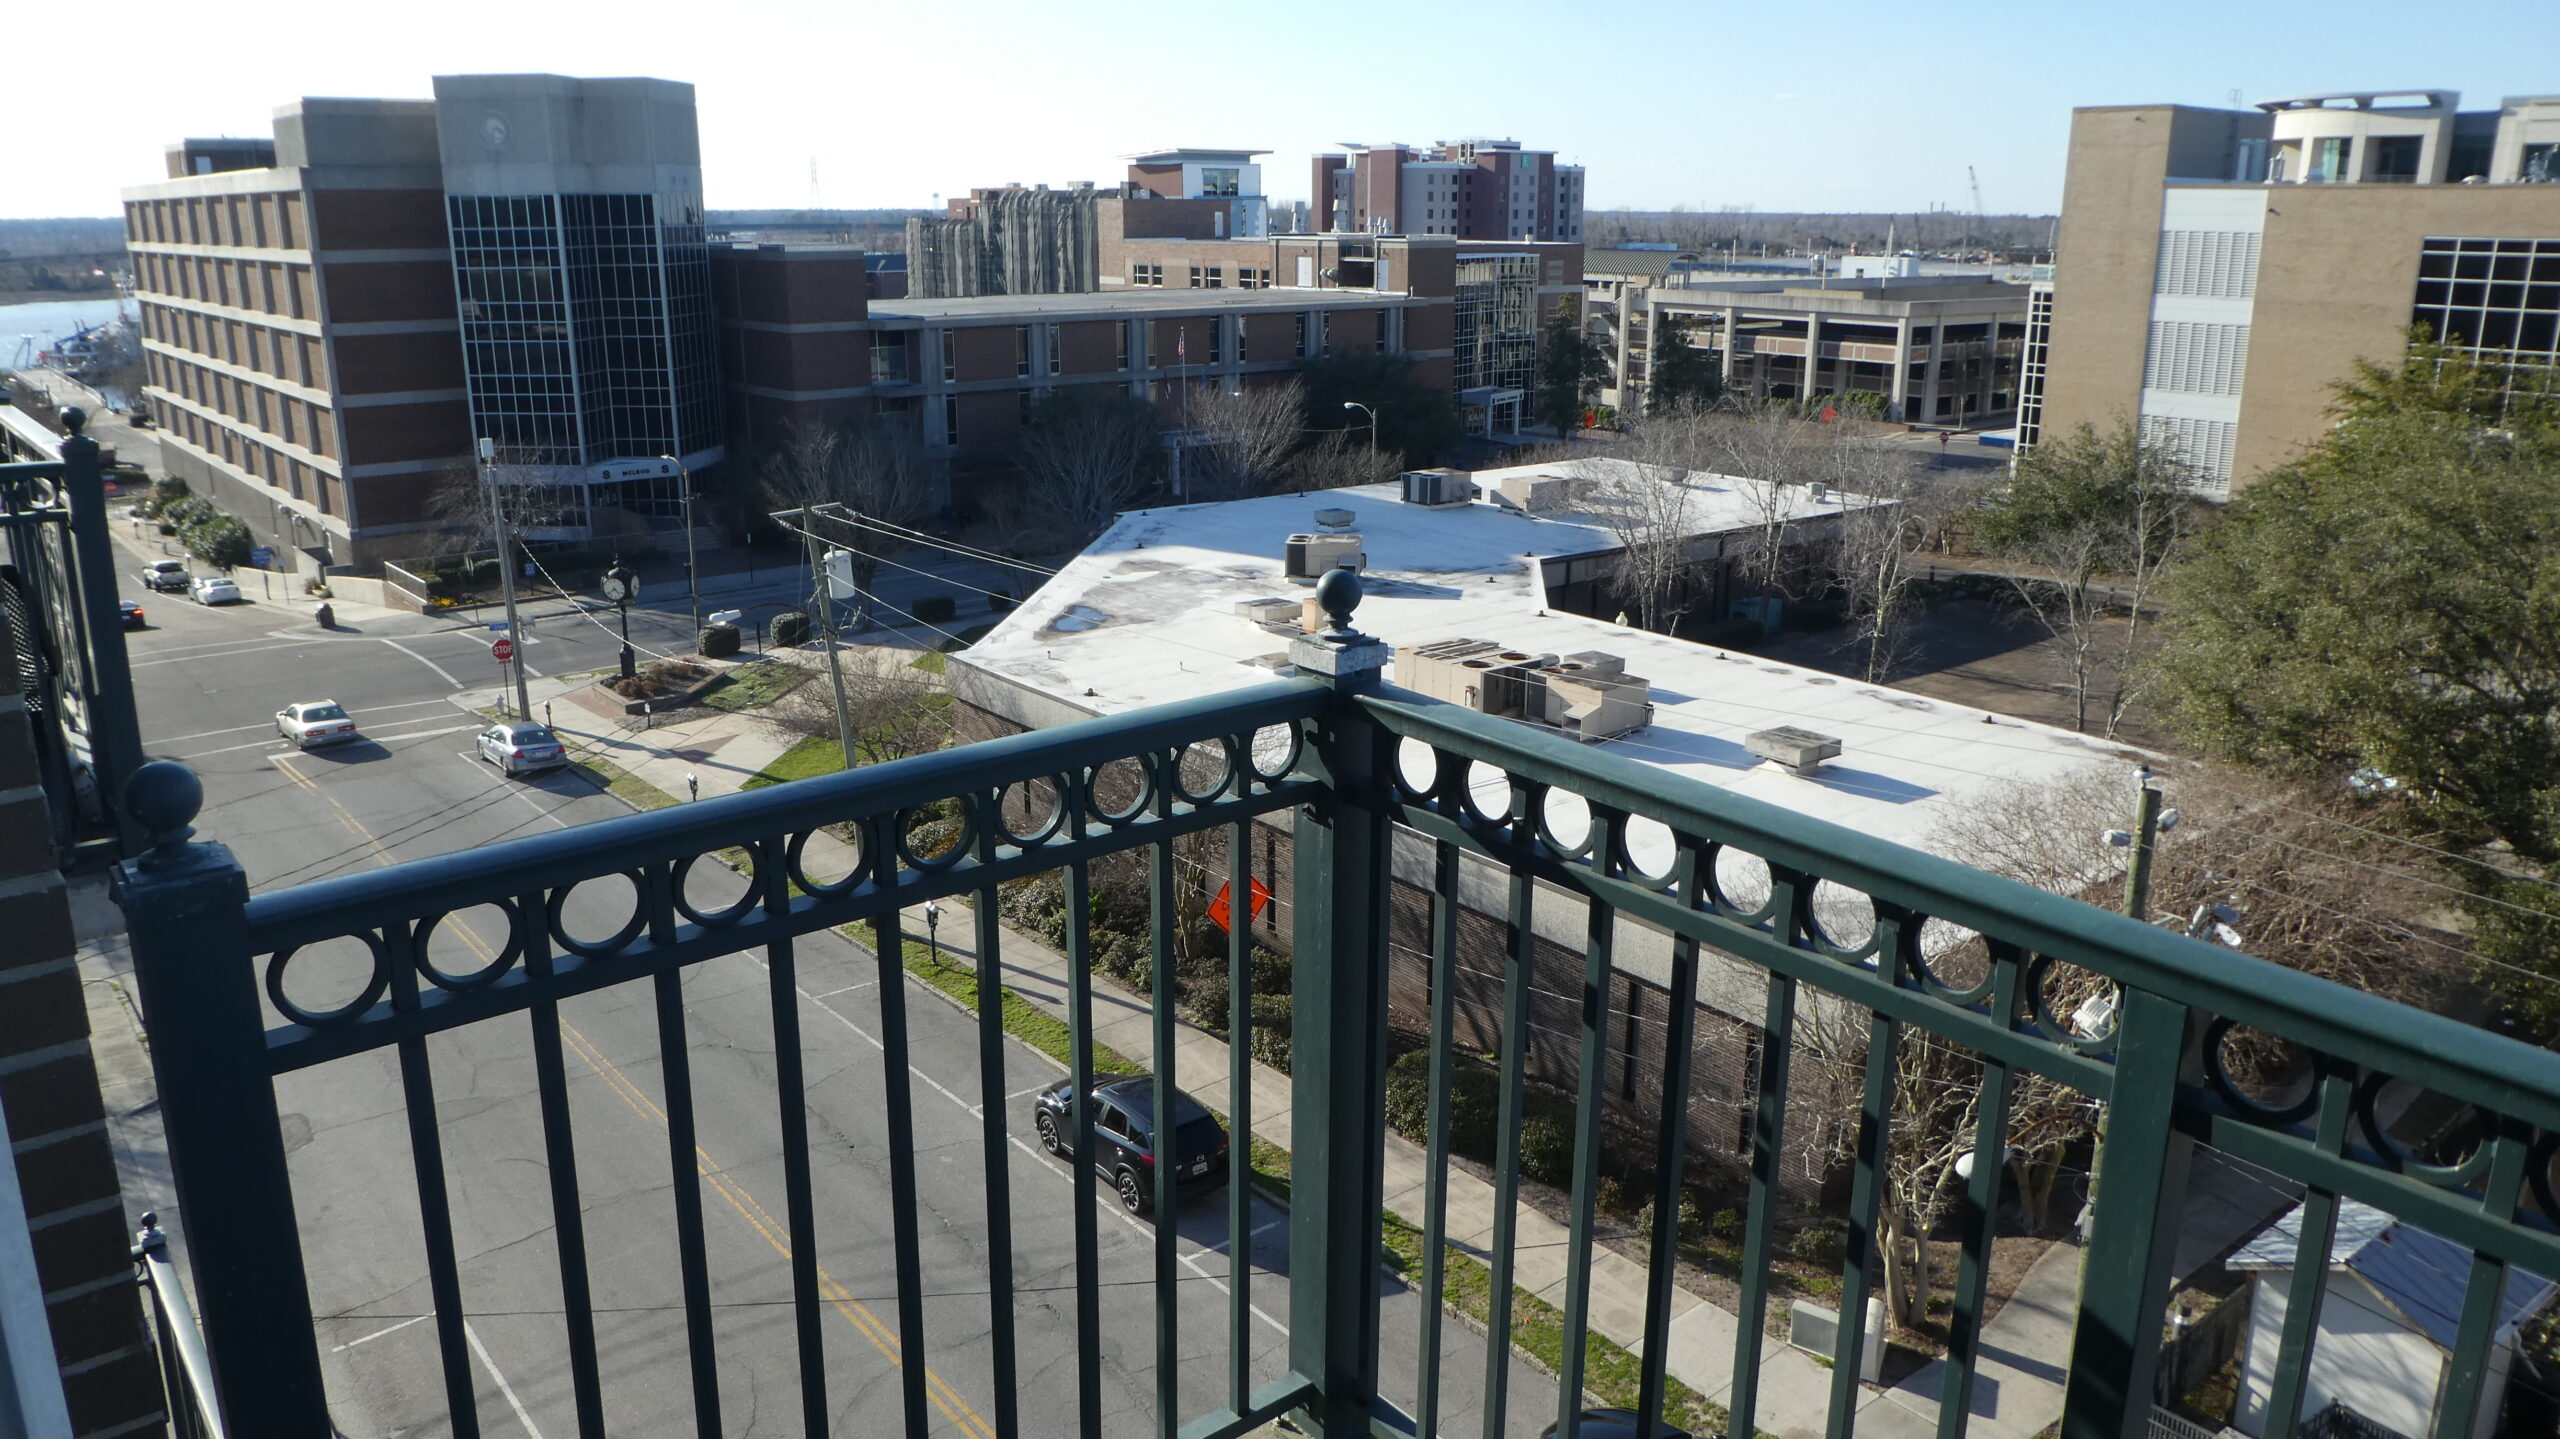 Photo shows the view northwest from a balcony at Bannerman Station